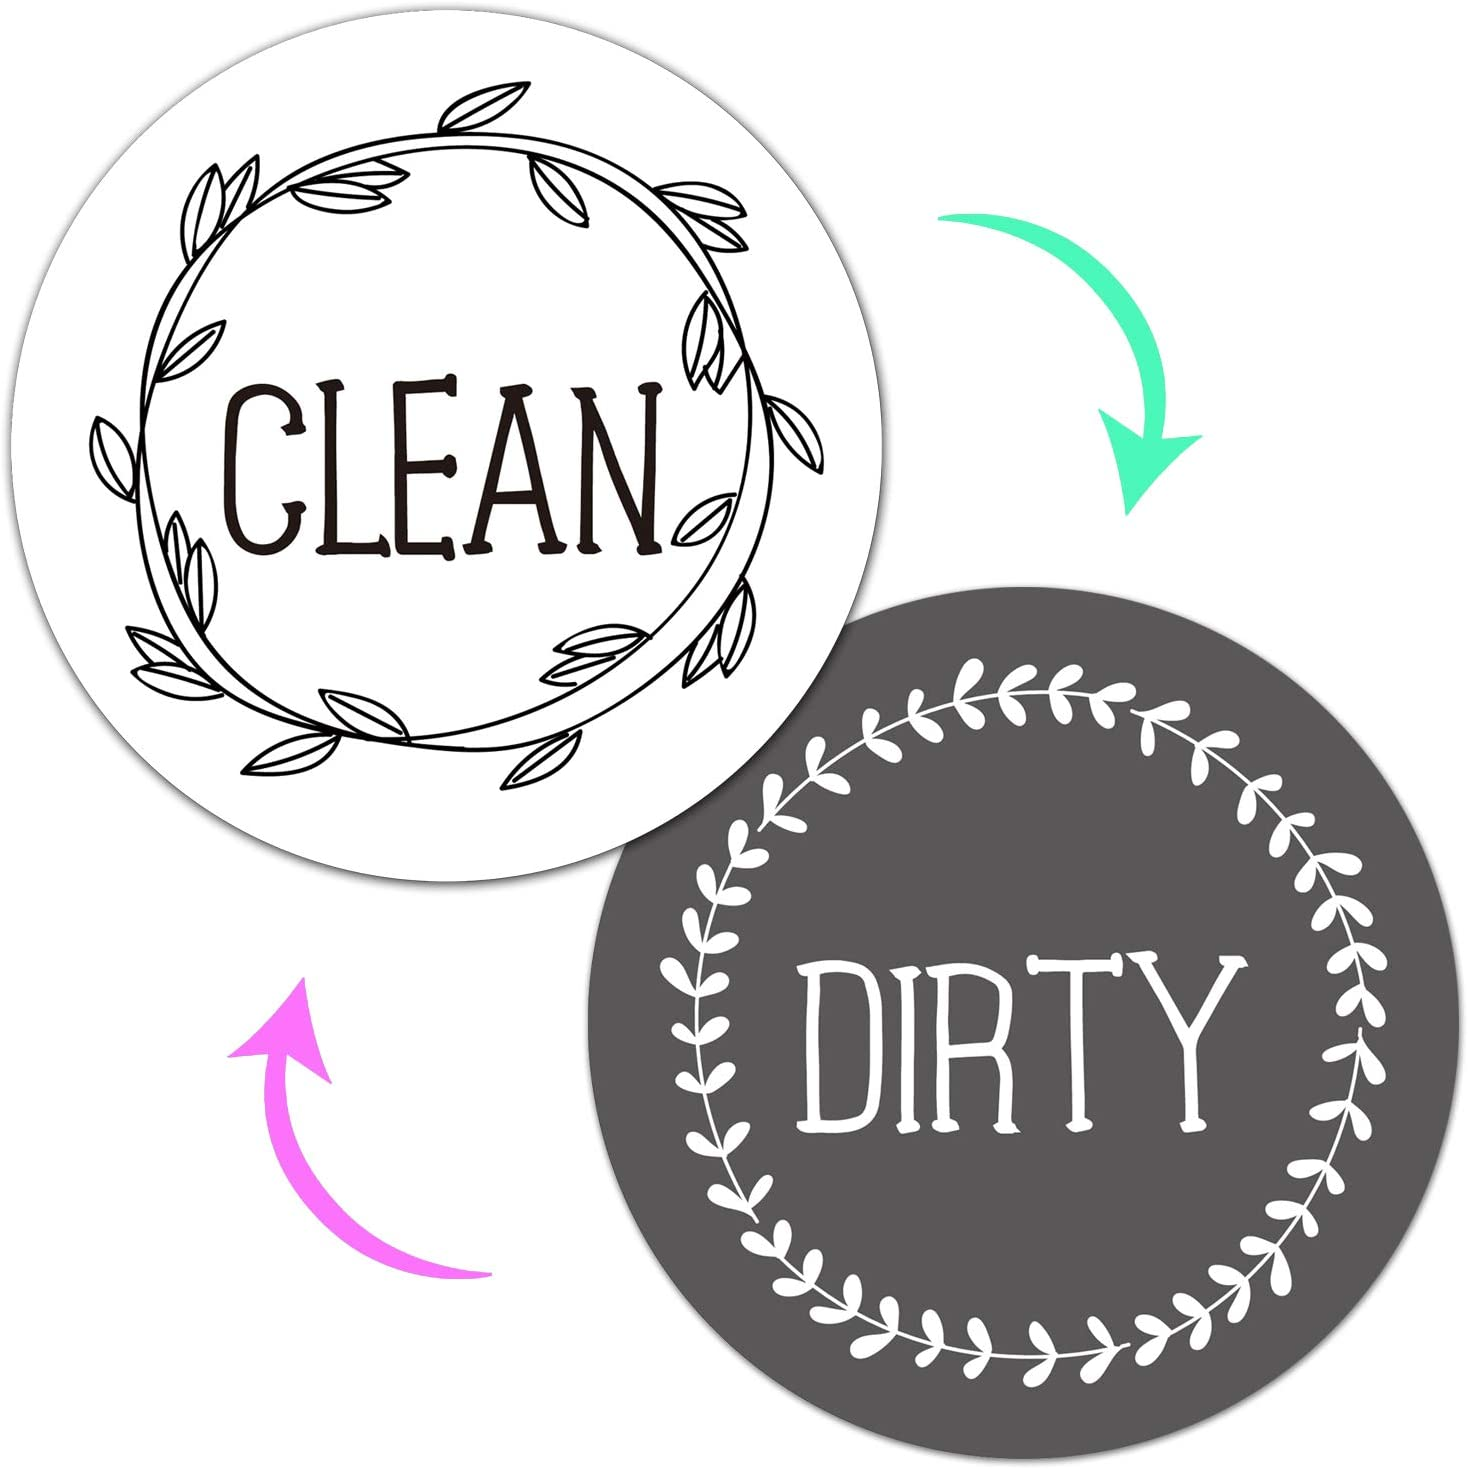 Universal Strong Magnetic Dishwasher Clean Dirty Sign, Double Sided Flip kitchen Dishwasher Indicator, Large Size 3.6 Inches for Tells Whether Dishes Are Clean or Dirty.